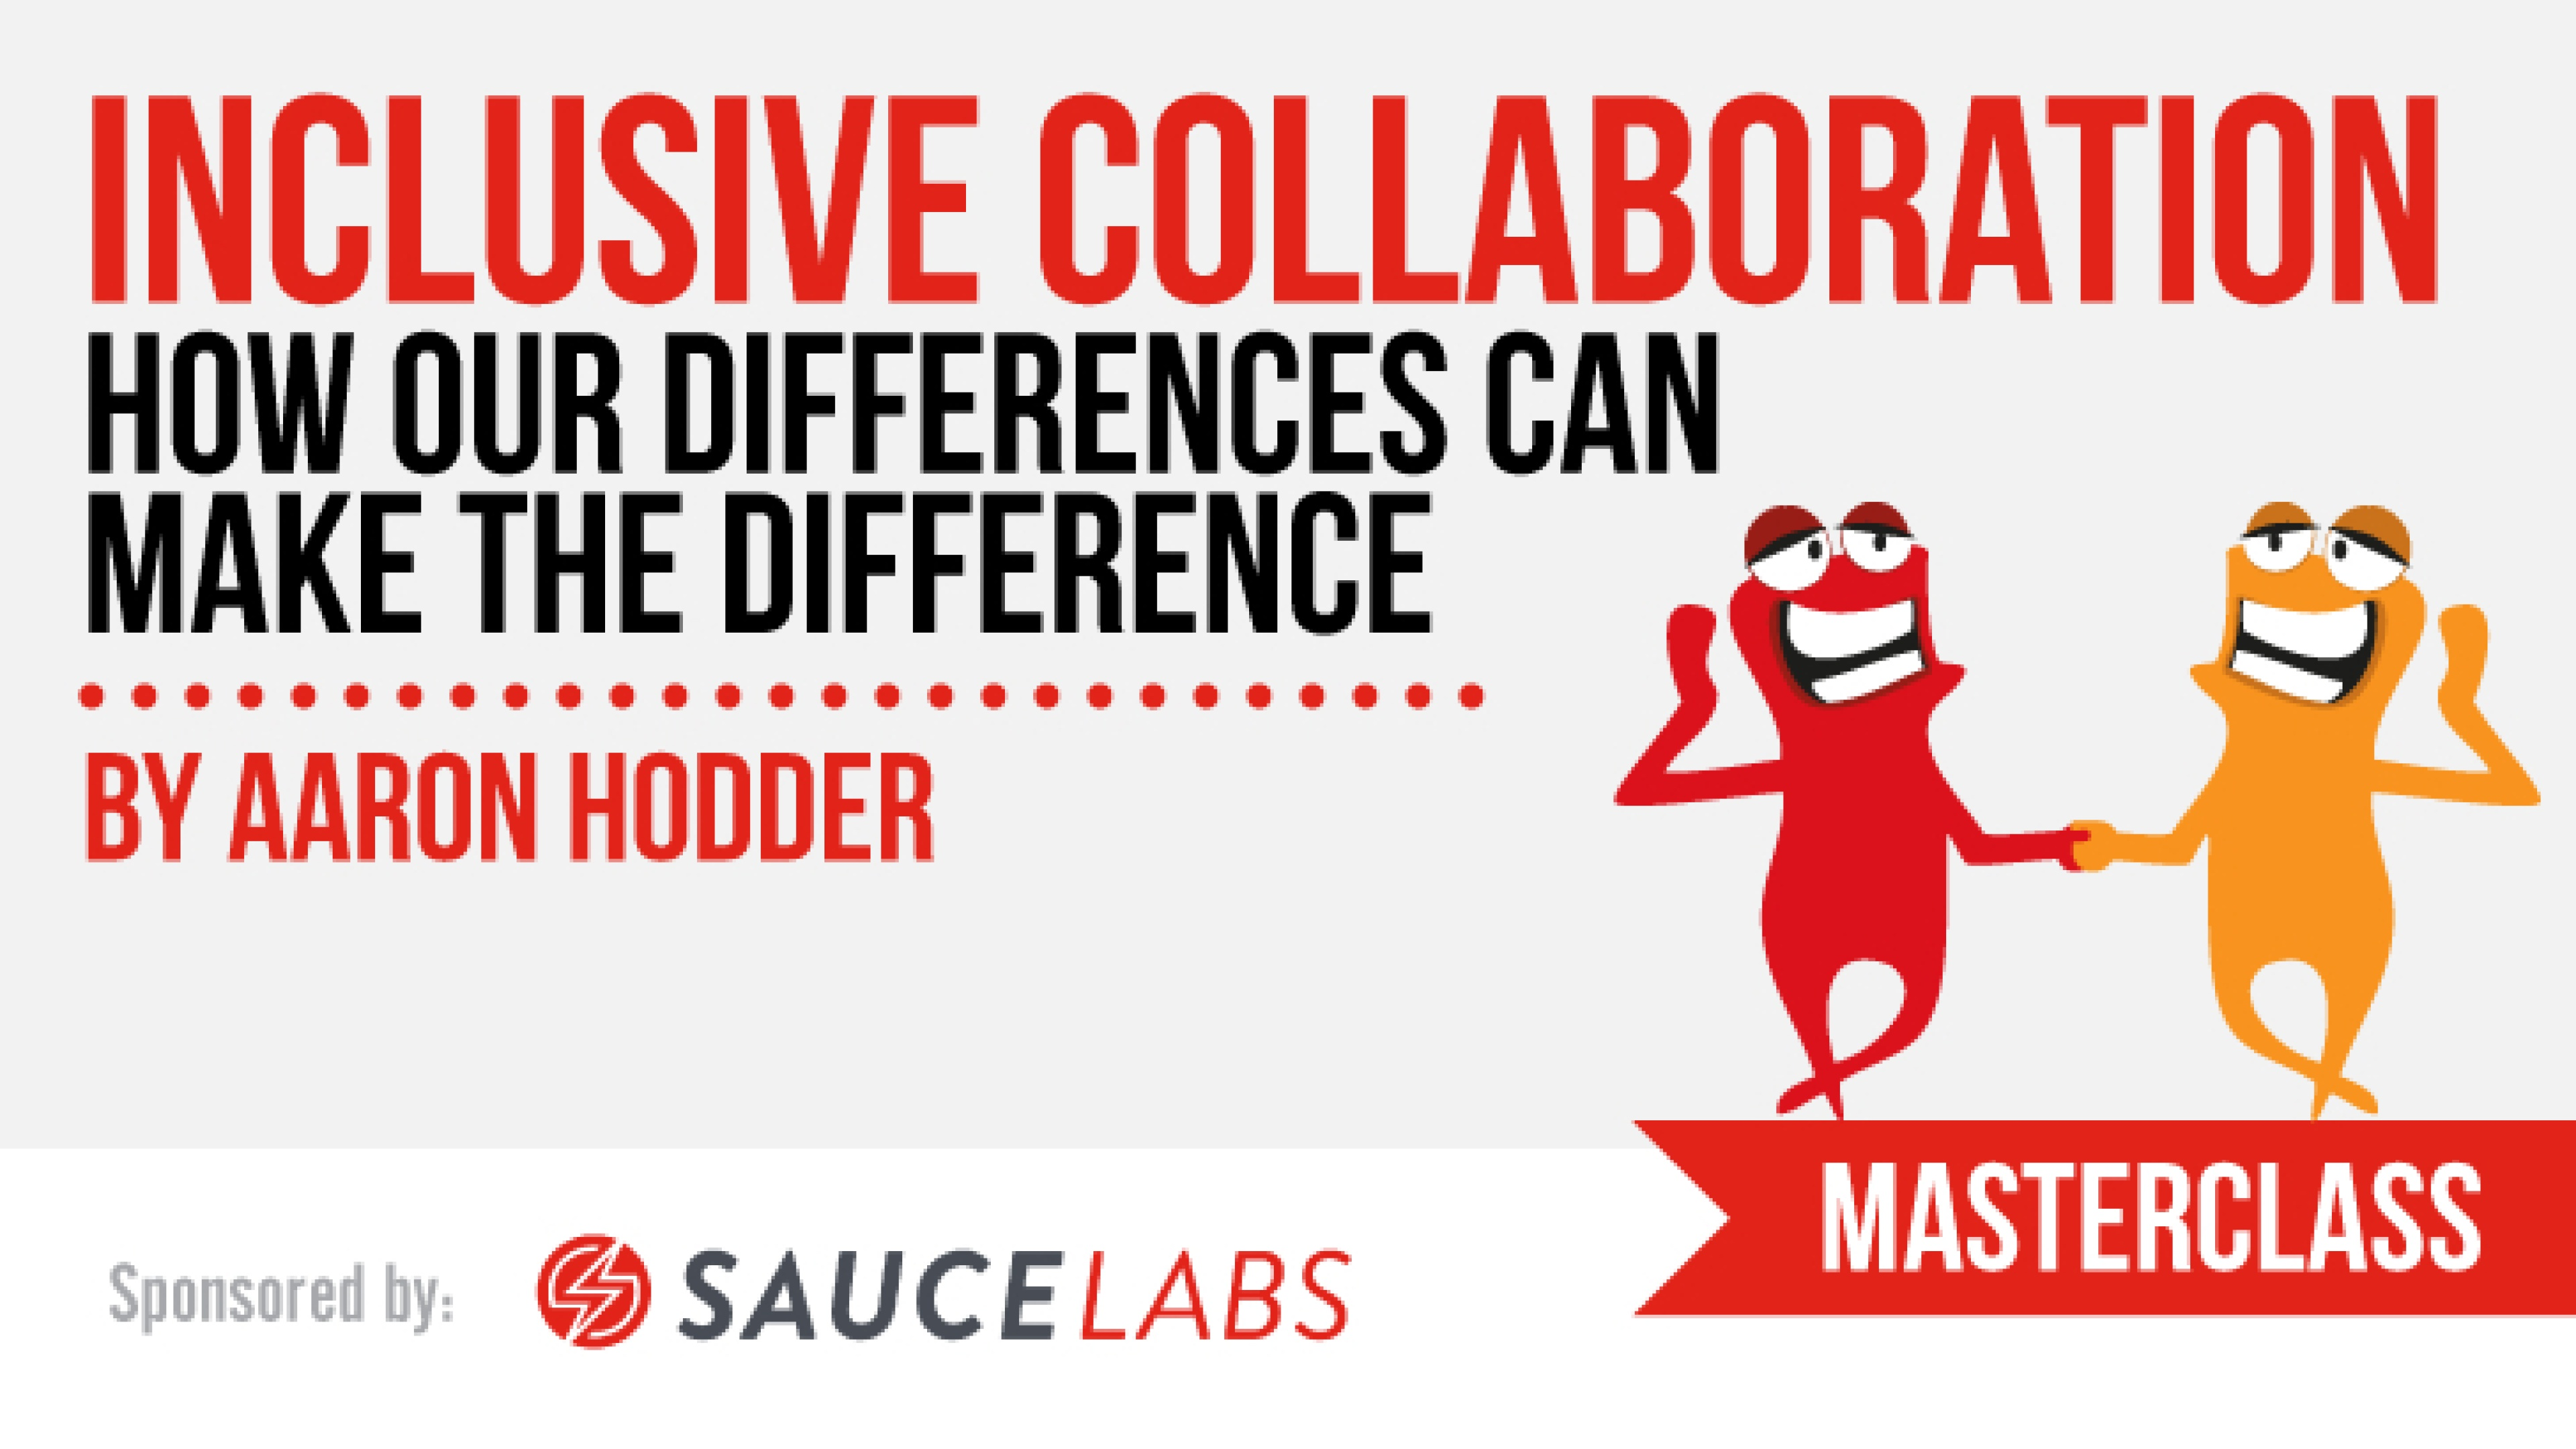 Inclusive Collaboration - how our differences can make the difference with Aaron Hodder